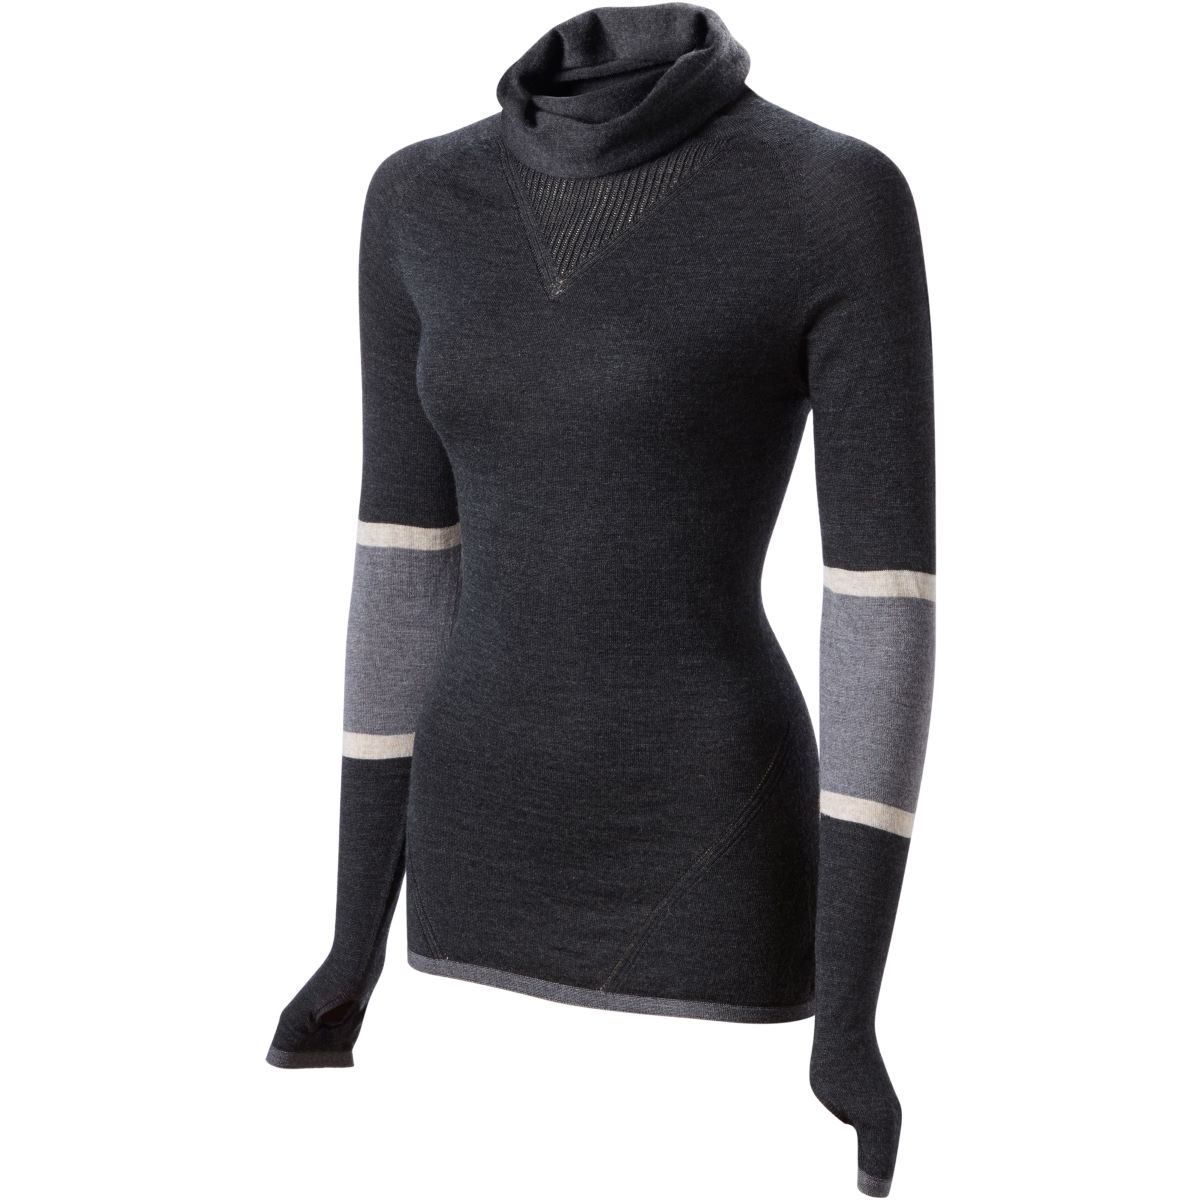 Maillot Femme FINDRA Marin (col roulé, rayé) - S Charbon Maillots